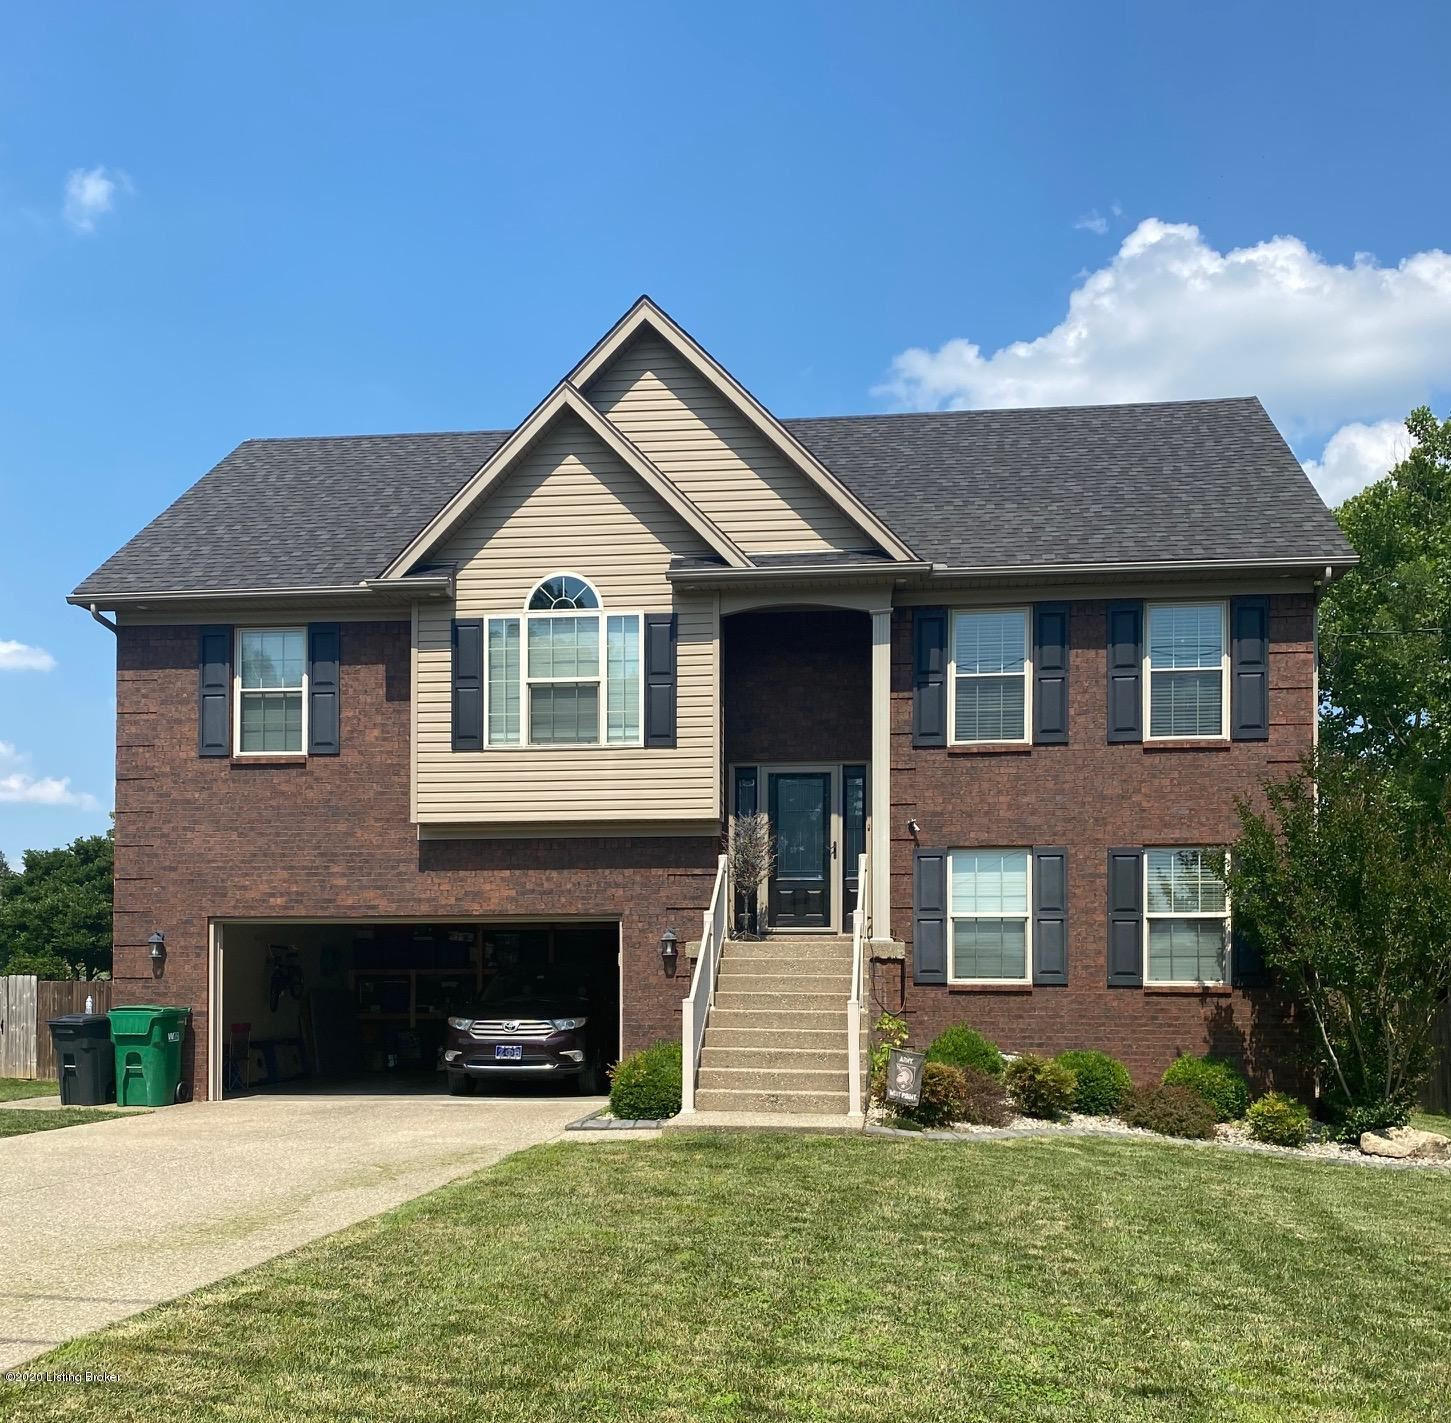 Property Image Of 1024 Dublin Cir In Louisville, Ky